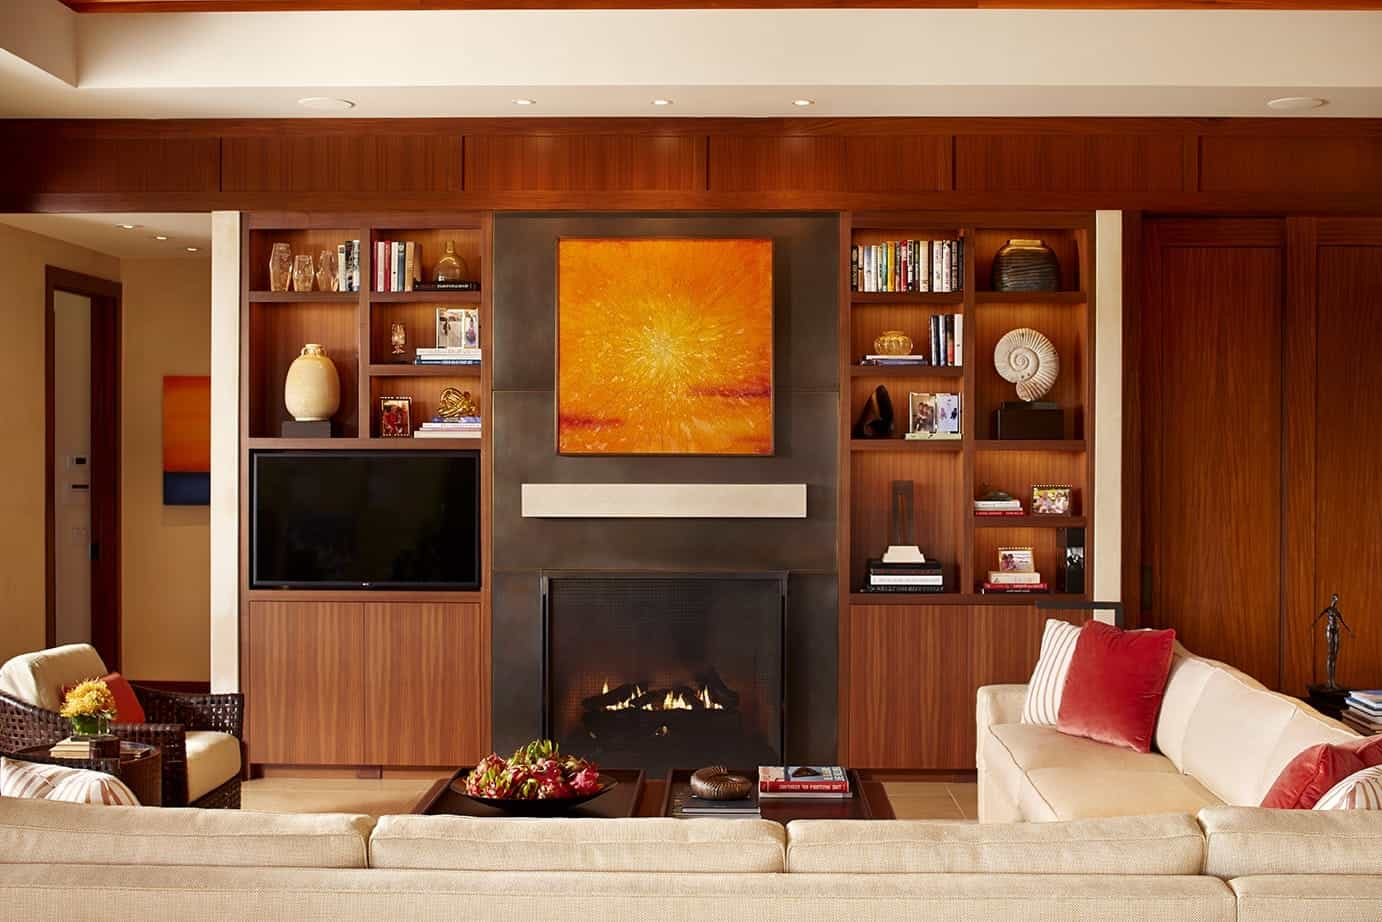 Fireplace And Warm Wood Bookshelves For Luxury Living Room (View 20 of 29)